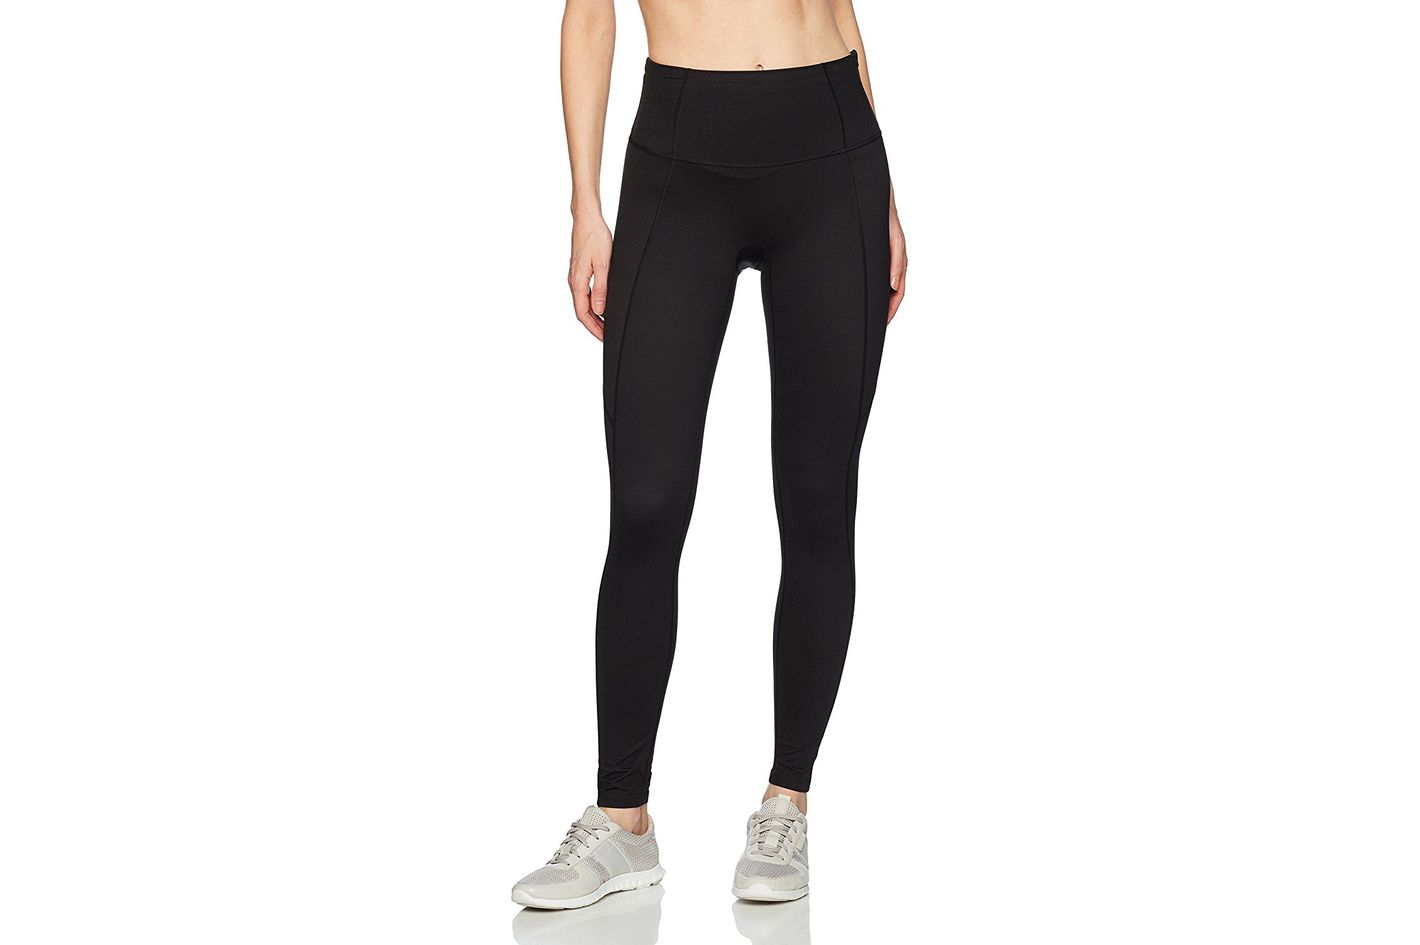 Spanx Workout Leggings